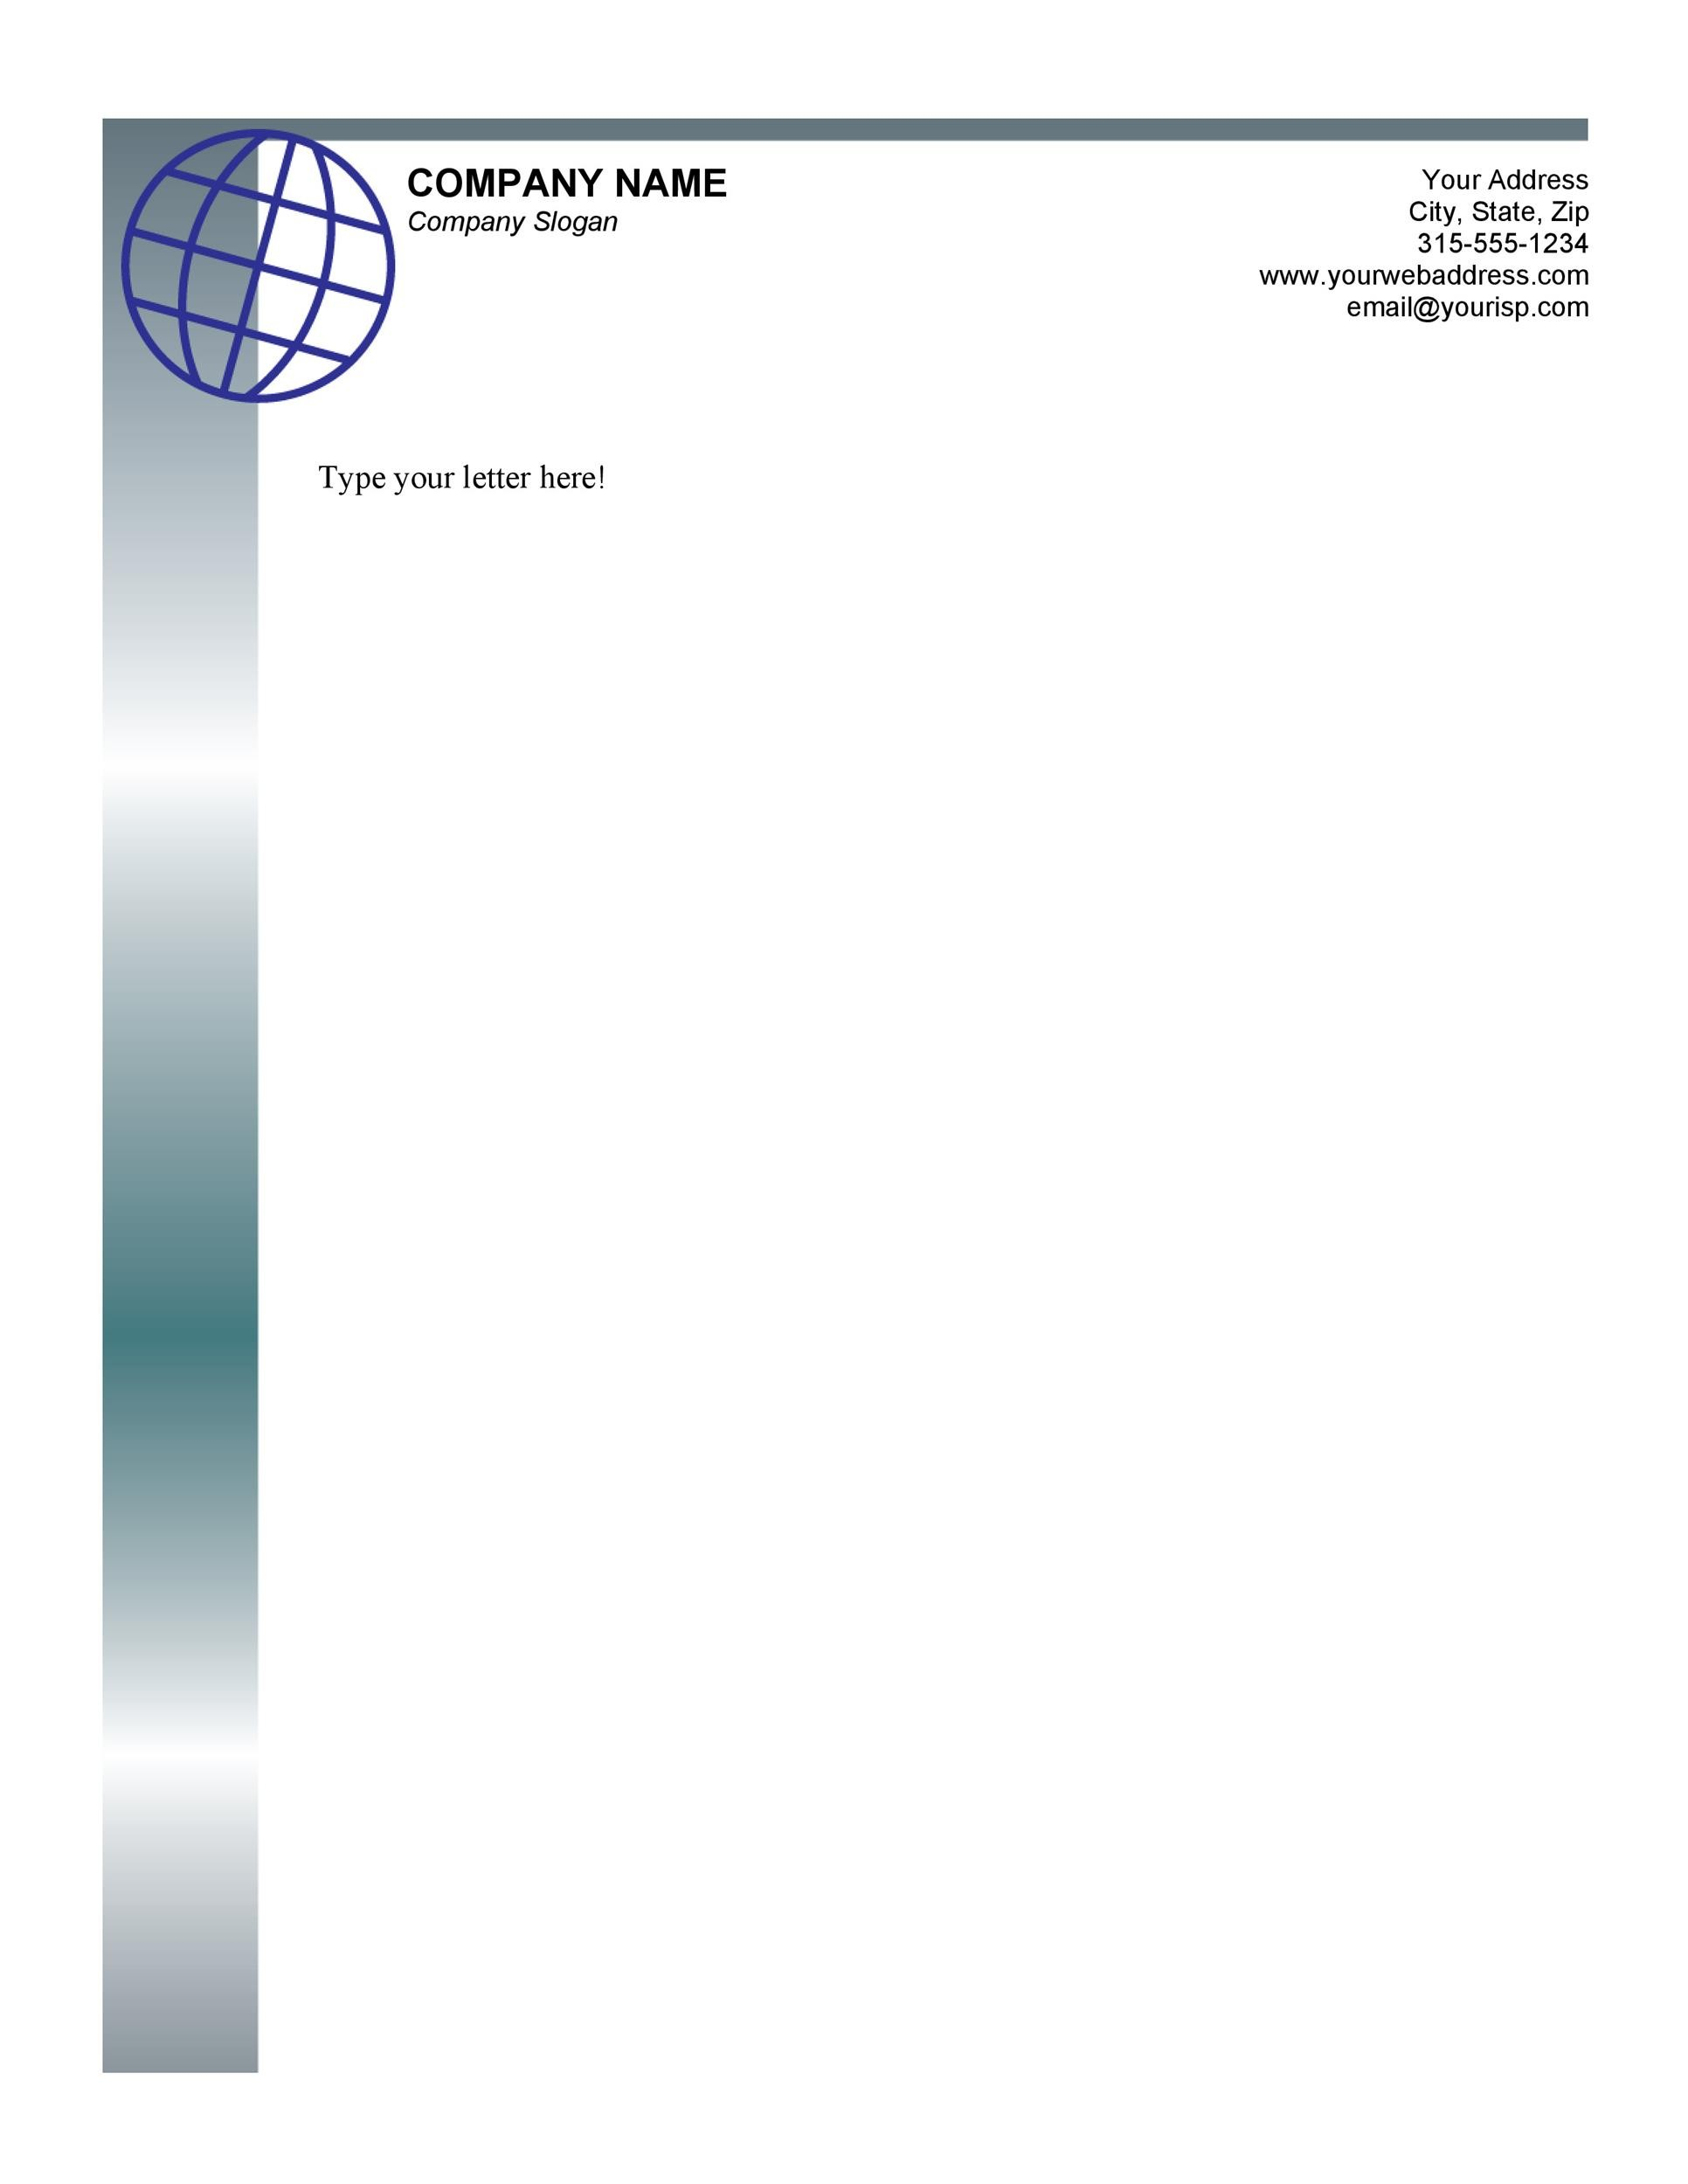 Official Letterhead Official Letterhead Template